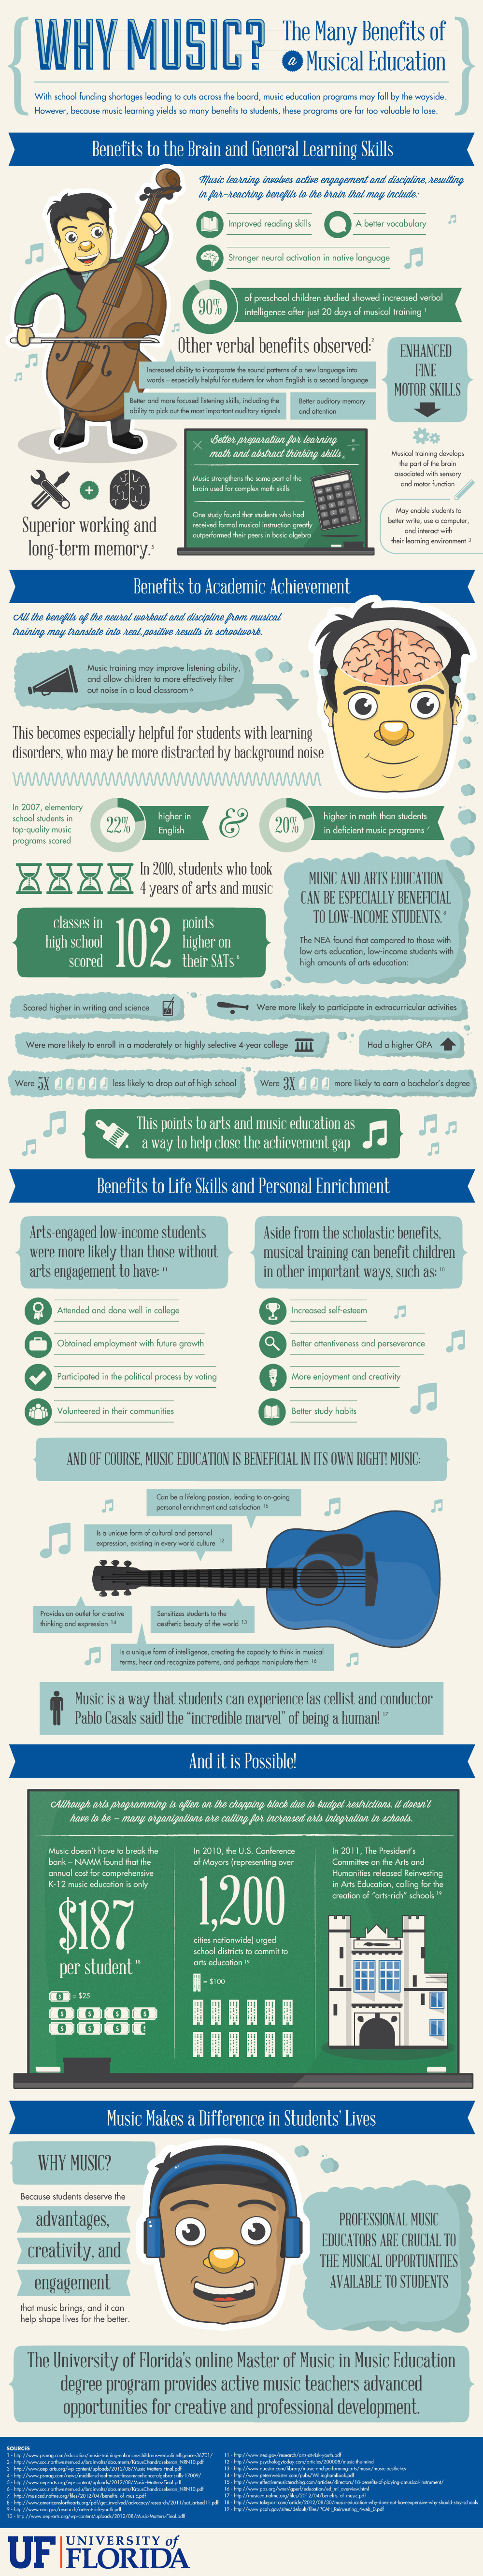 Is music good for school?